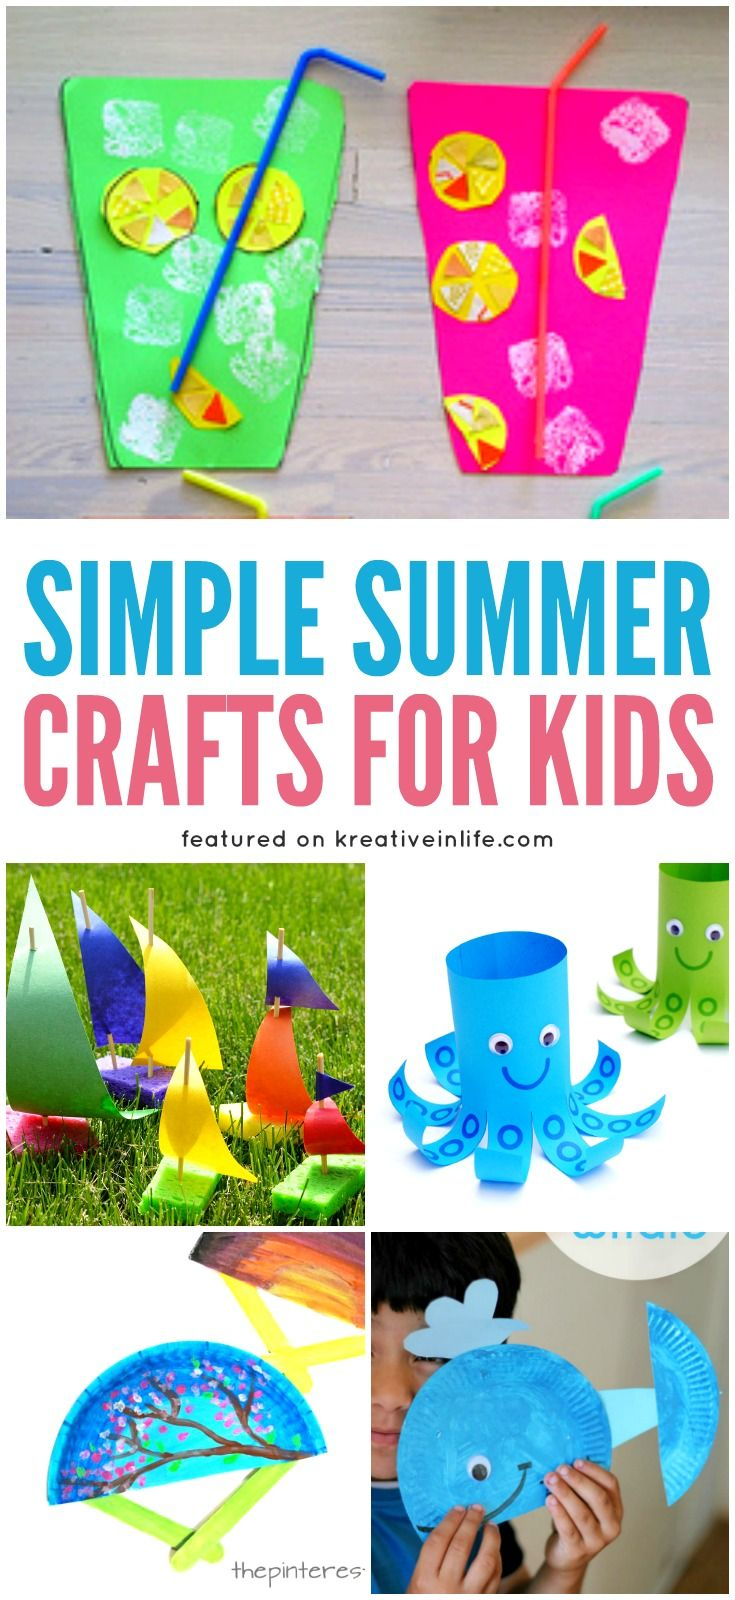 Fun Craft Ideas from bestjobaroundtheworld.com 6